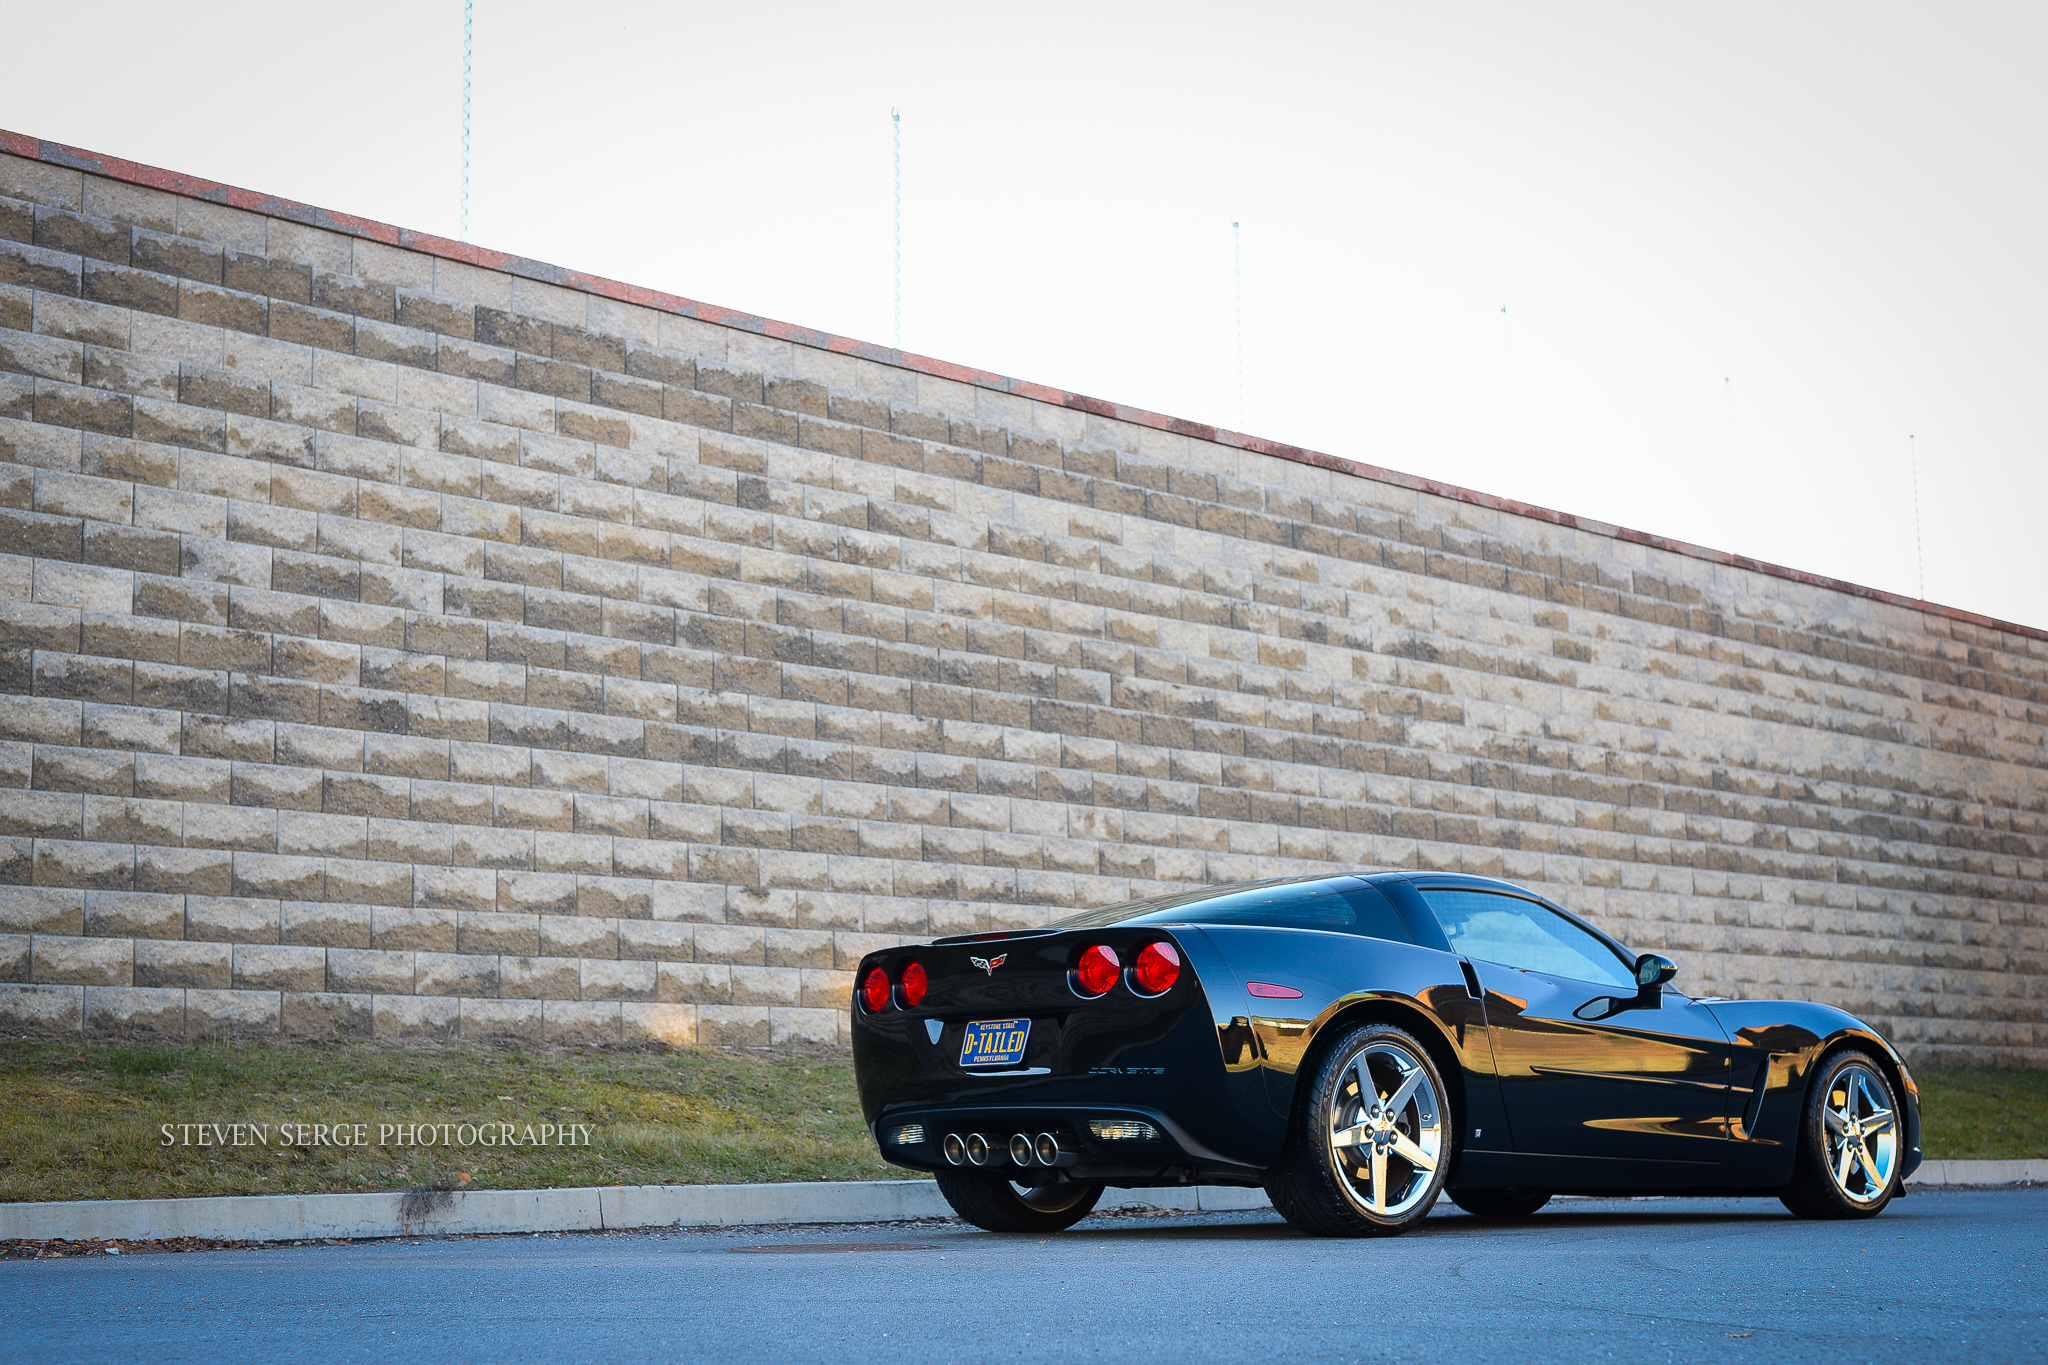 Corvette-Commercial-Photography-Ebay-Craigslist-Scranton-NEPA-Photographer-business-2.jpg